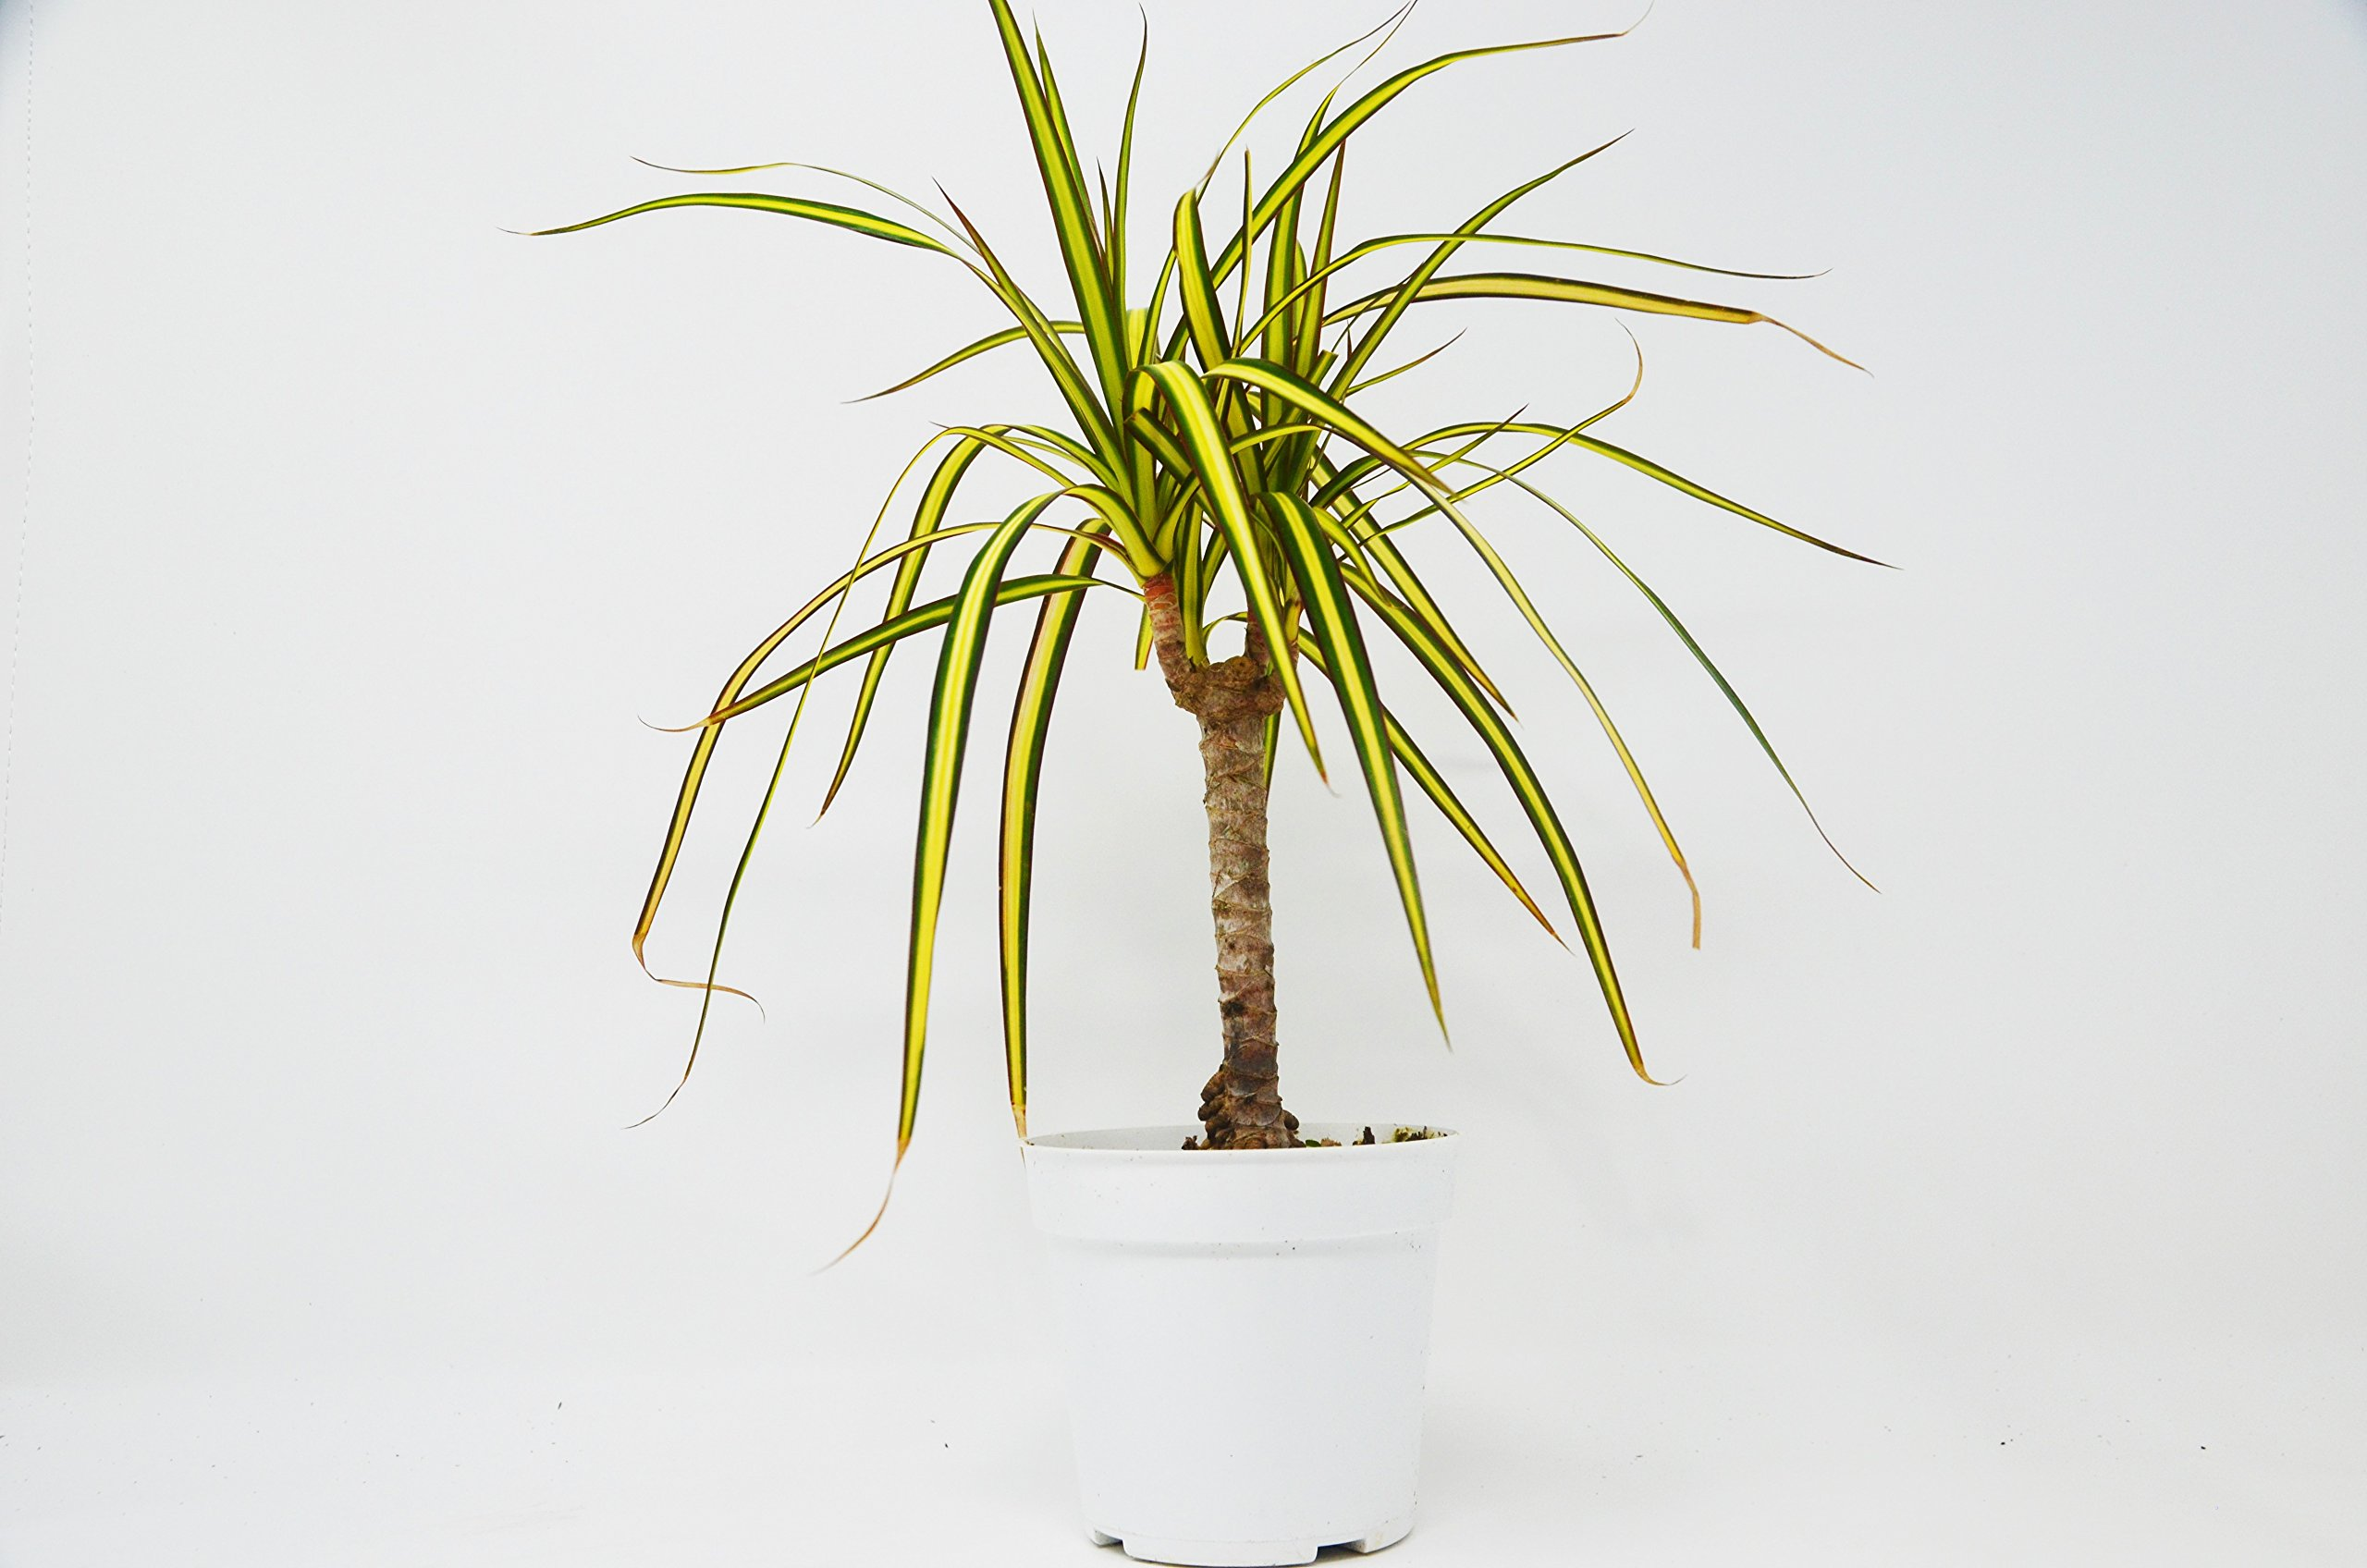 Dracaena 'Marginata Sunray Cane' - Live Plant - FREE Care Guide - 4'' Pot - HARD TO KILL by House Plant Shop